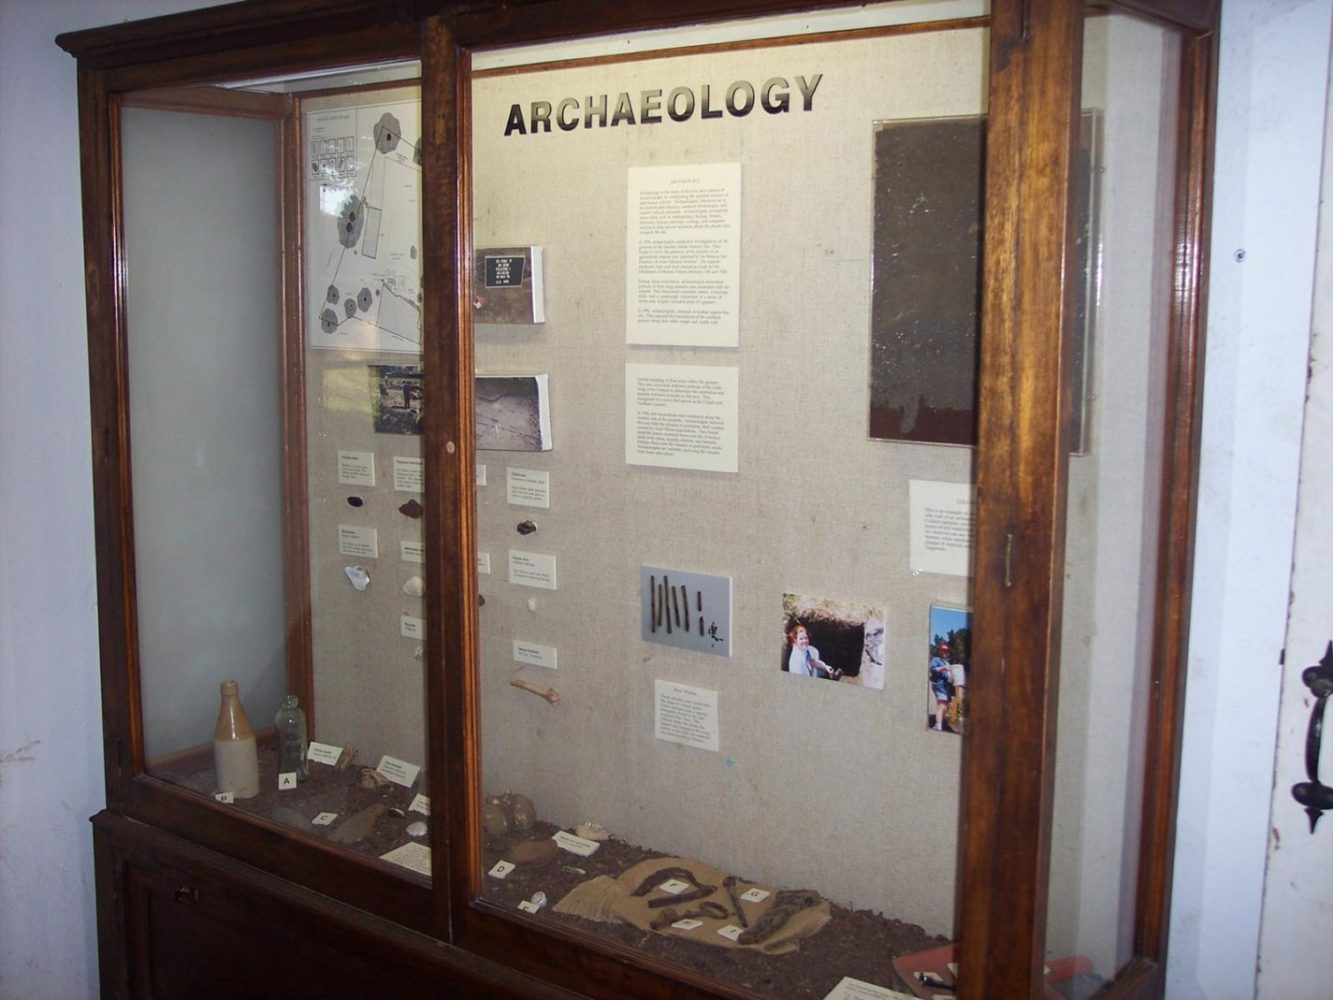 Archaeology display case at Sanchez Adobe in Woodside